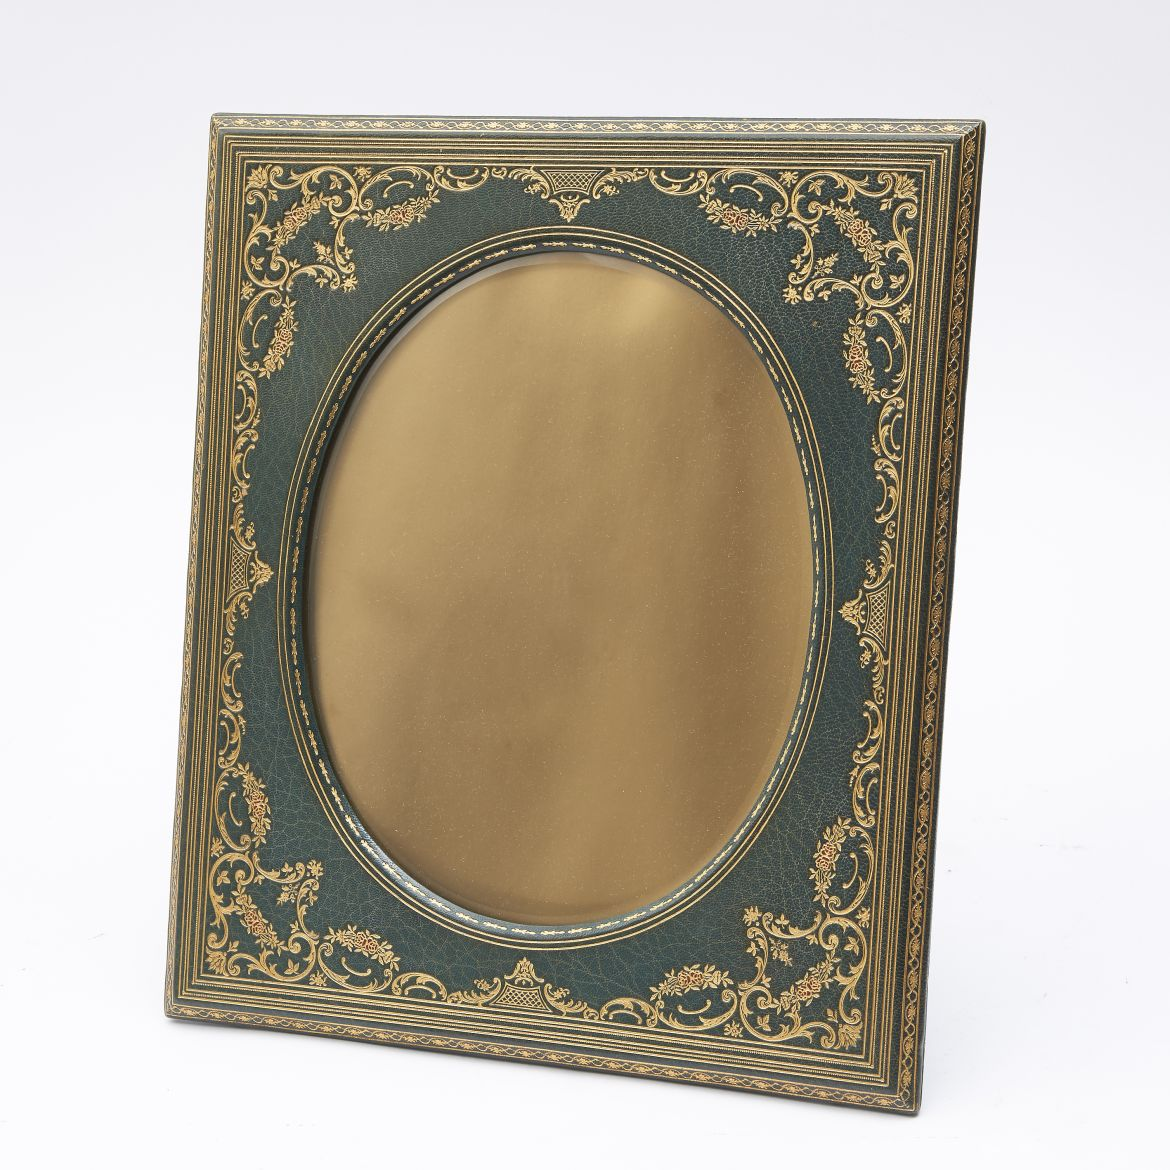 Tooled Green Leather Frame